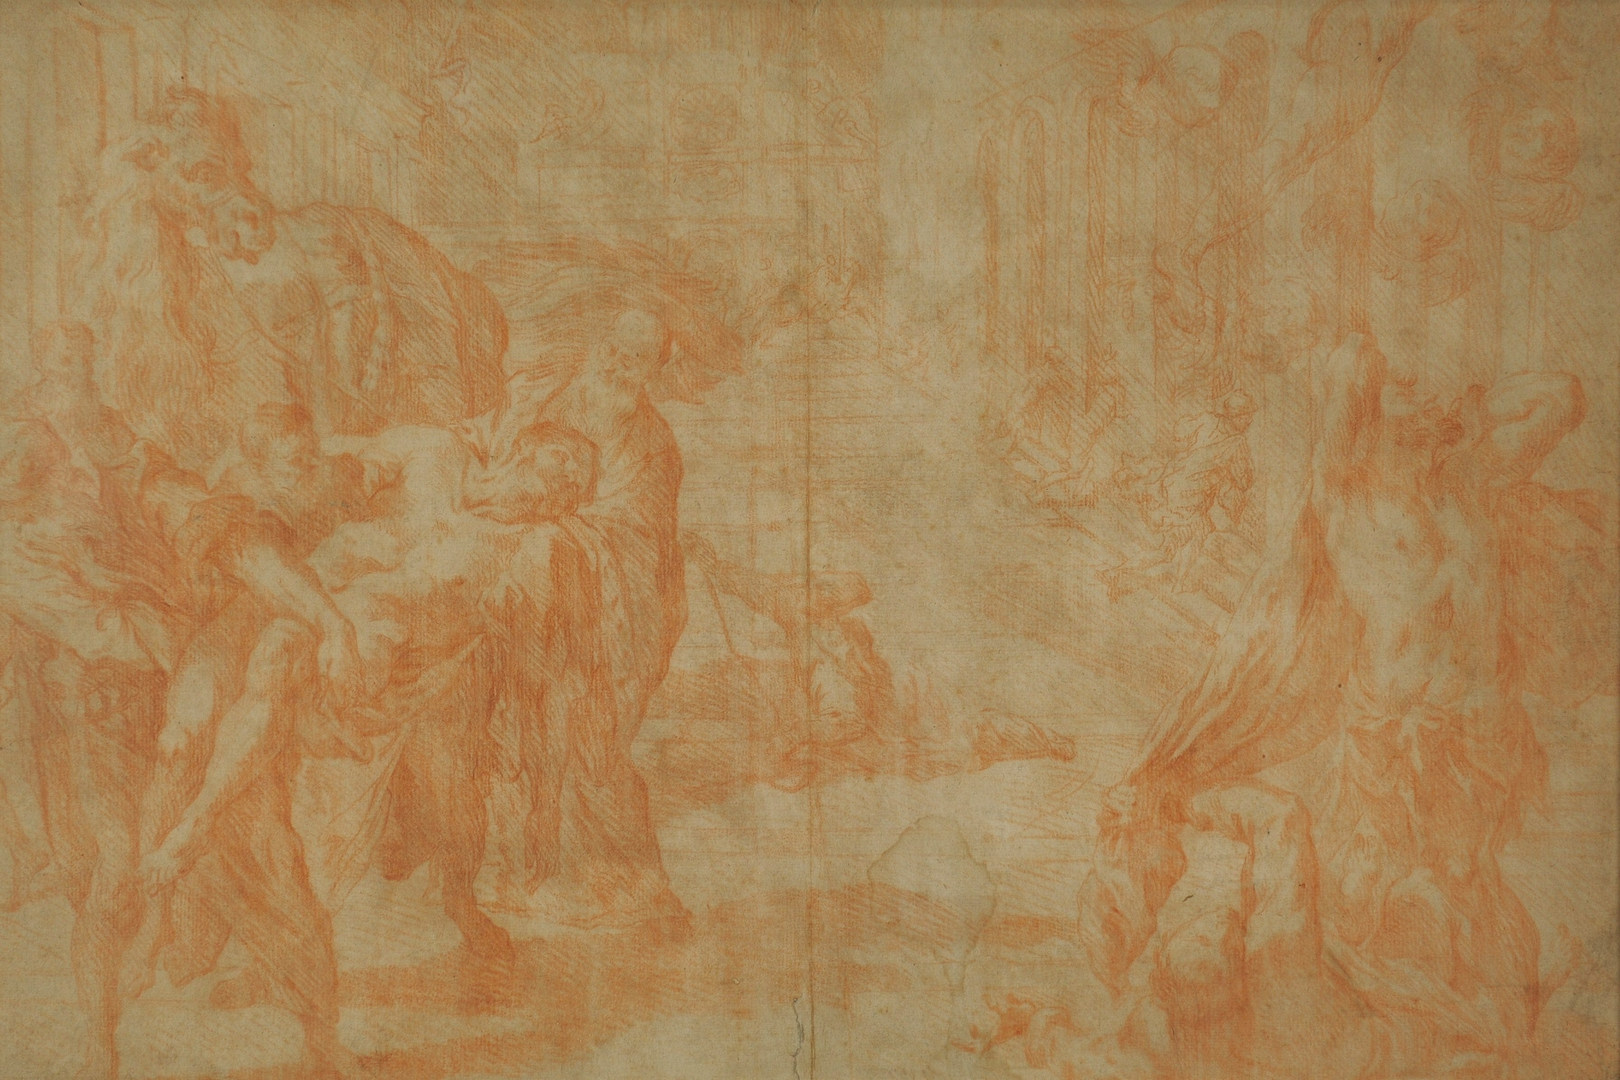 Lot 153: School of Tintoretto Drawing, 17th c.